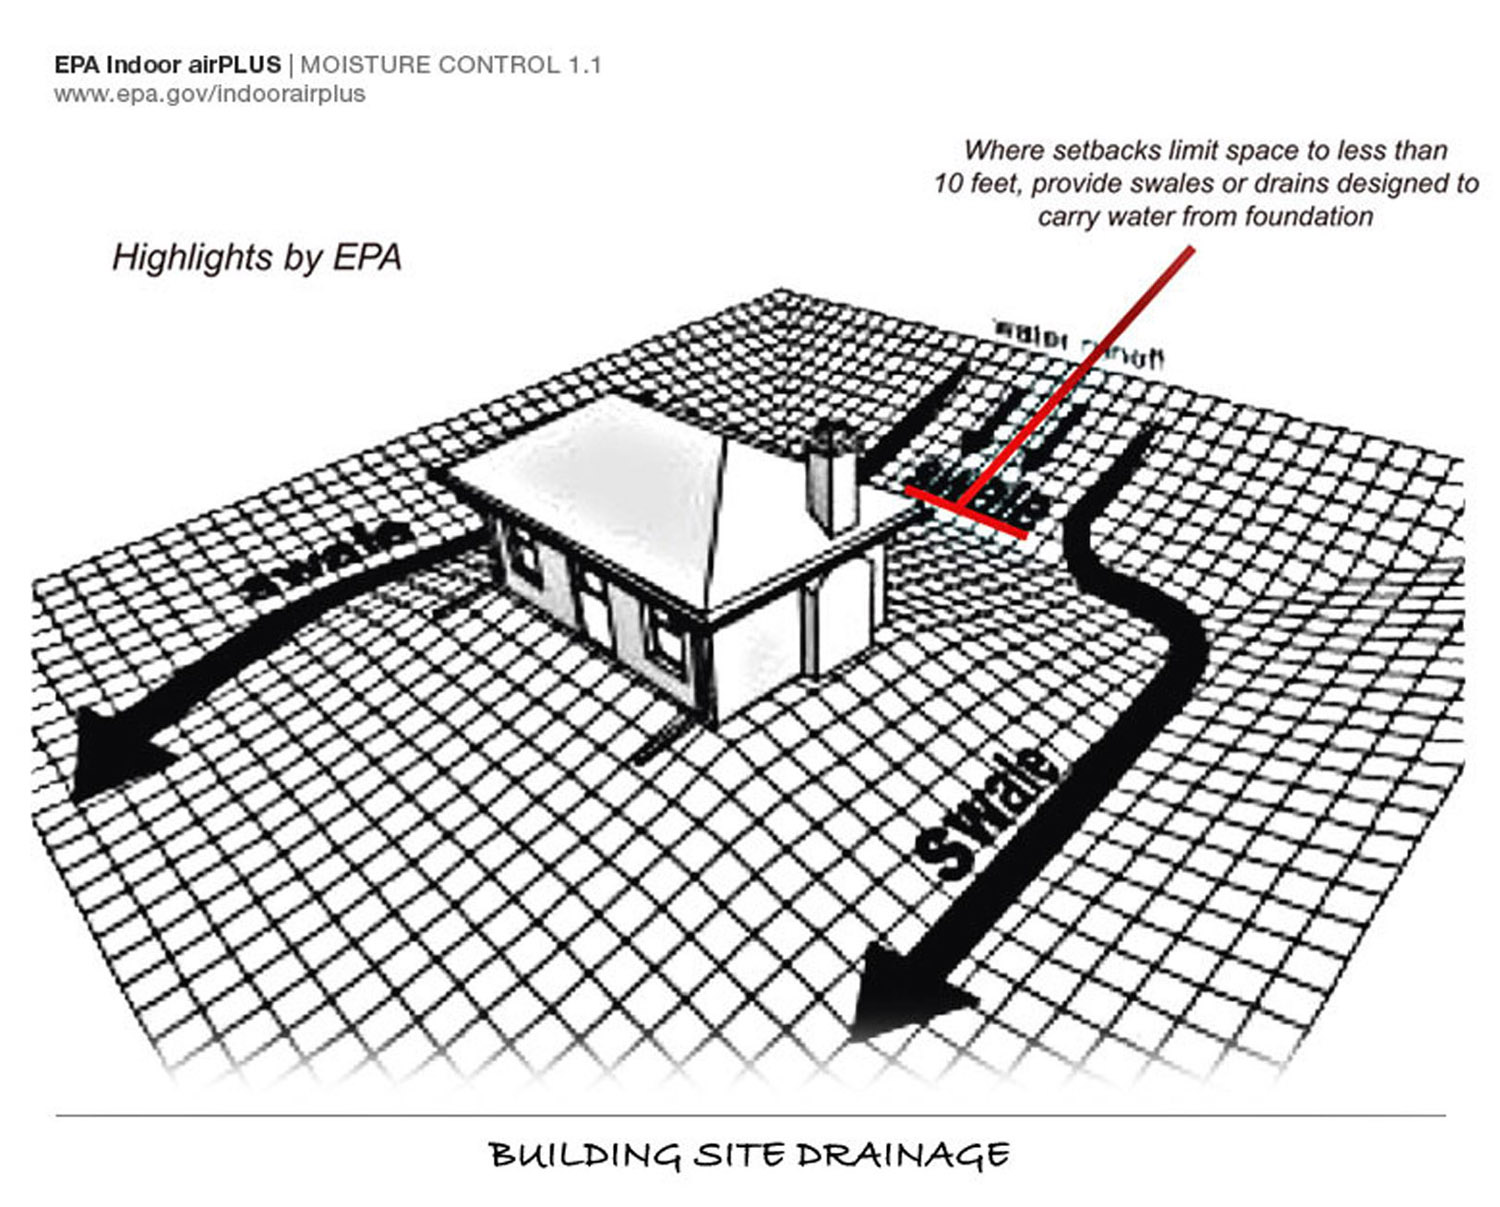 Moisture Control for the Crawl Space 2012 Building Codes